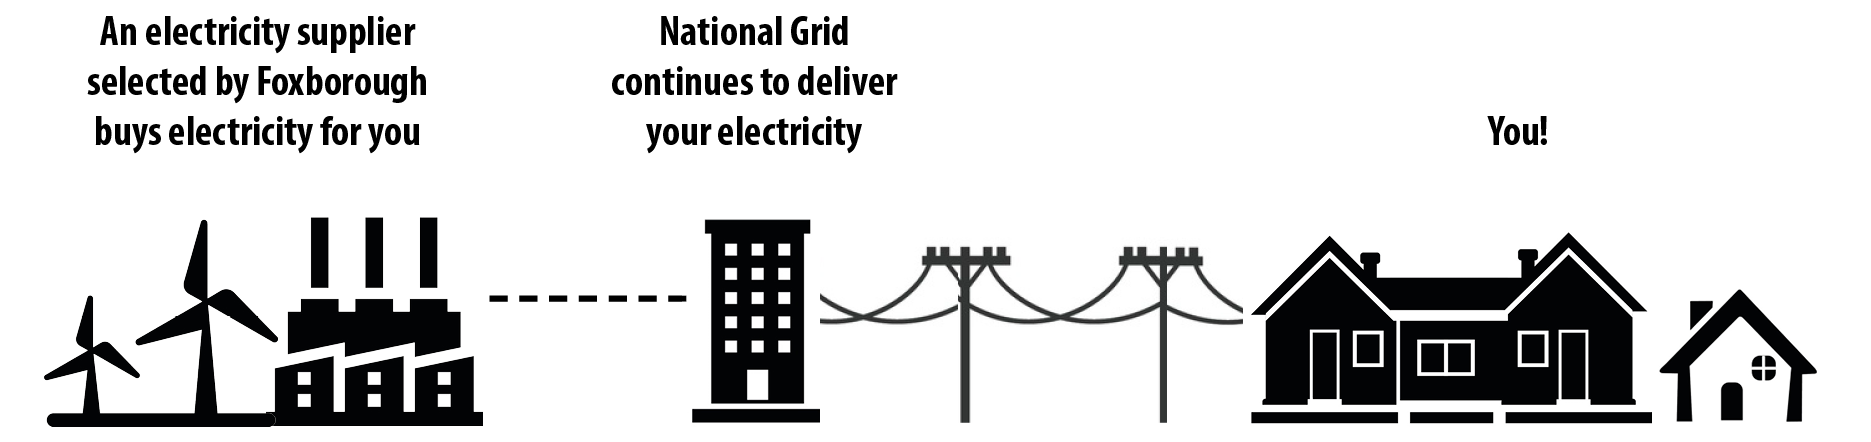 Diagram showing an electricity supplier, National Grid, and the town of Foxborough